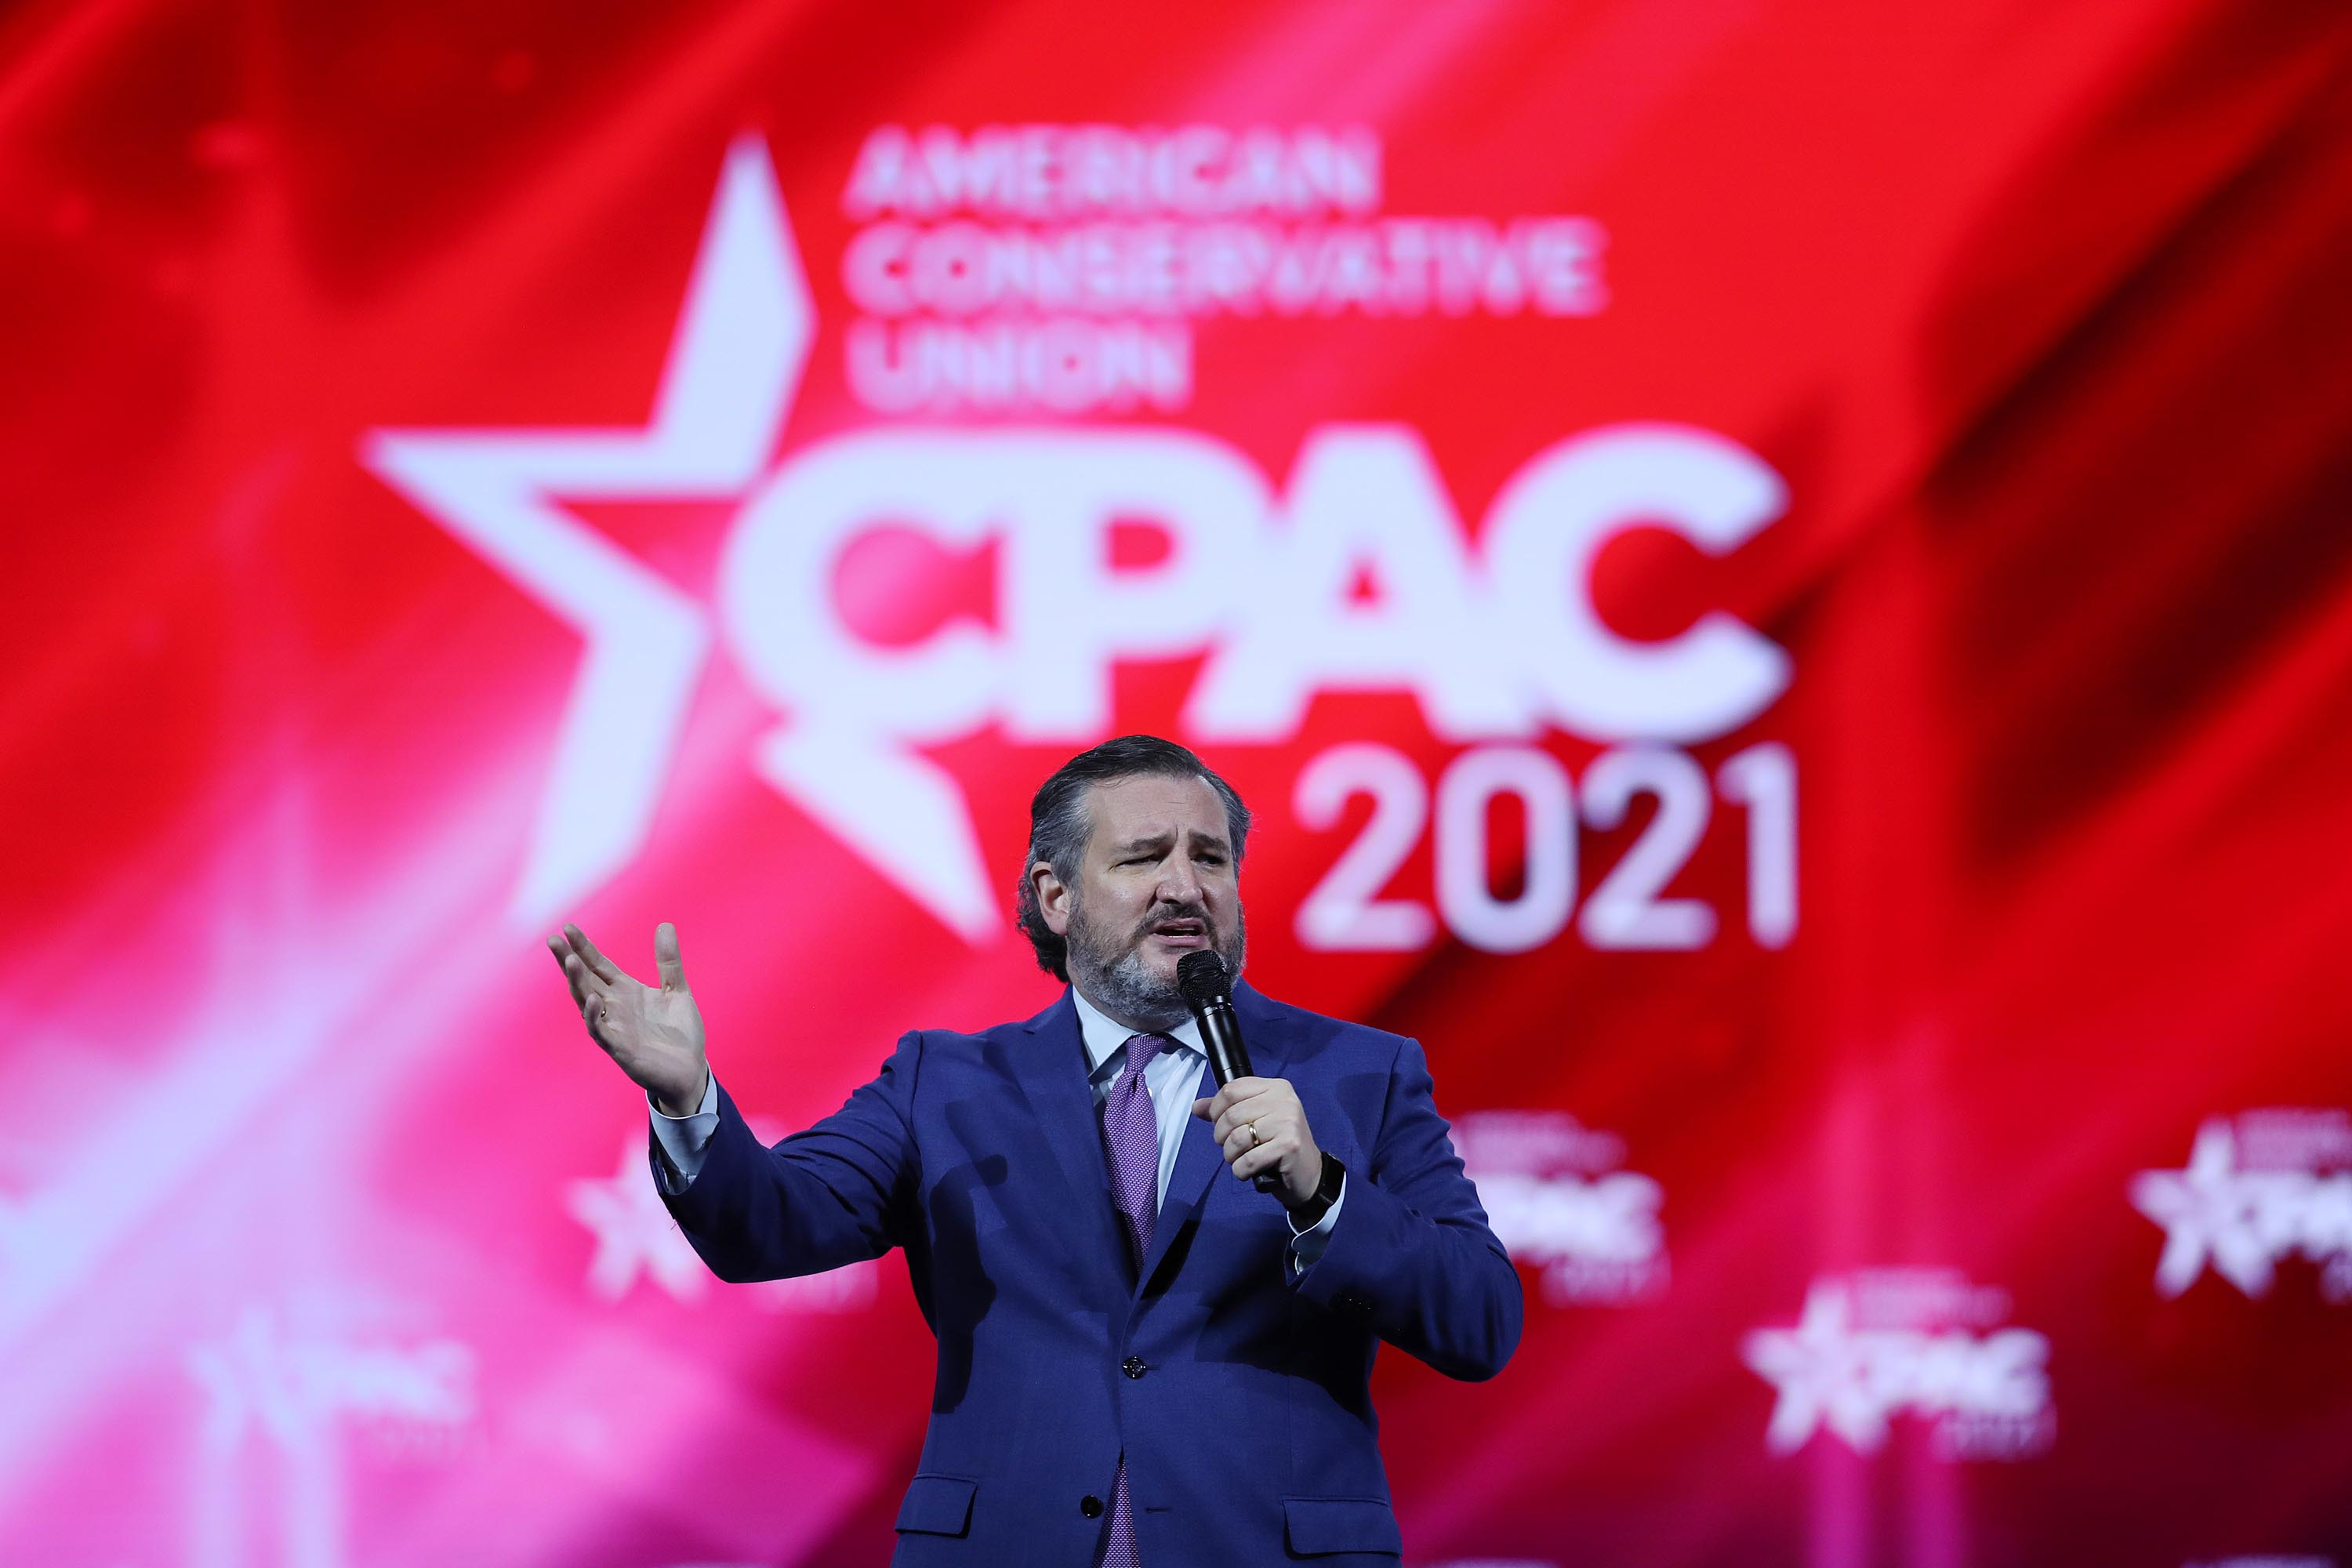 'They restricted our freedoms': CPAC speakers push back against Covid restrictions